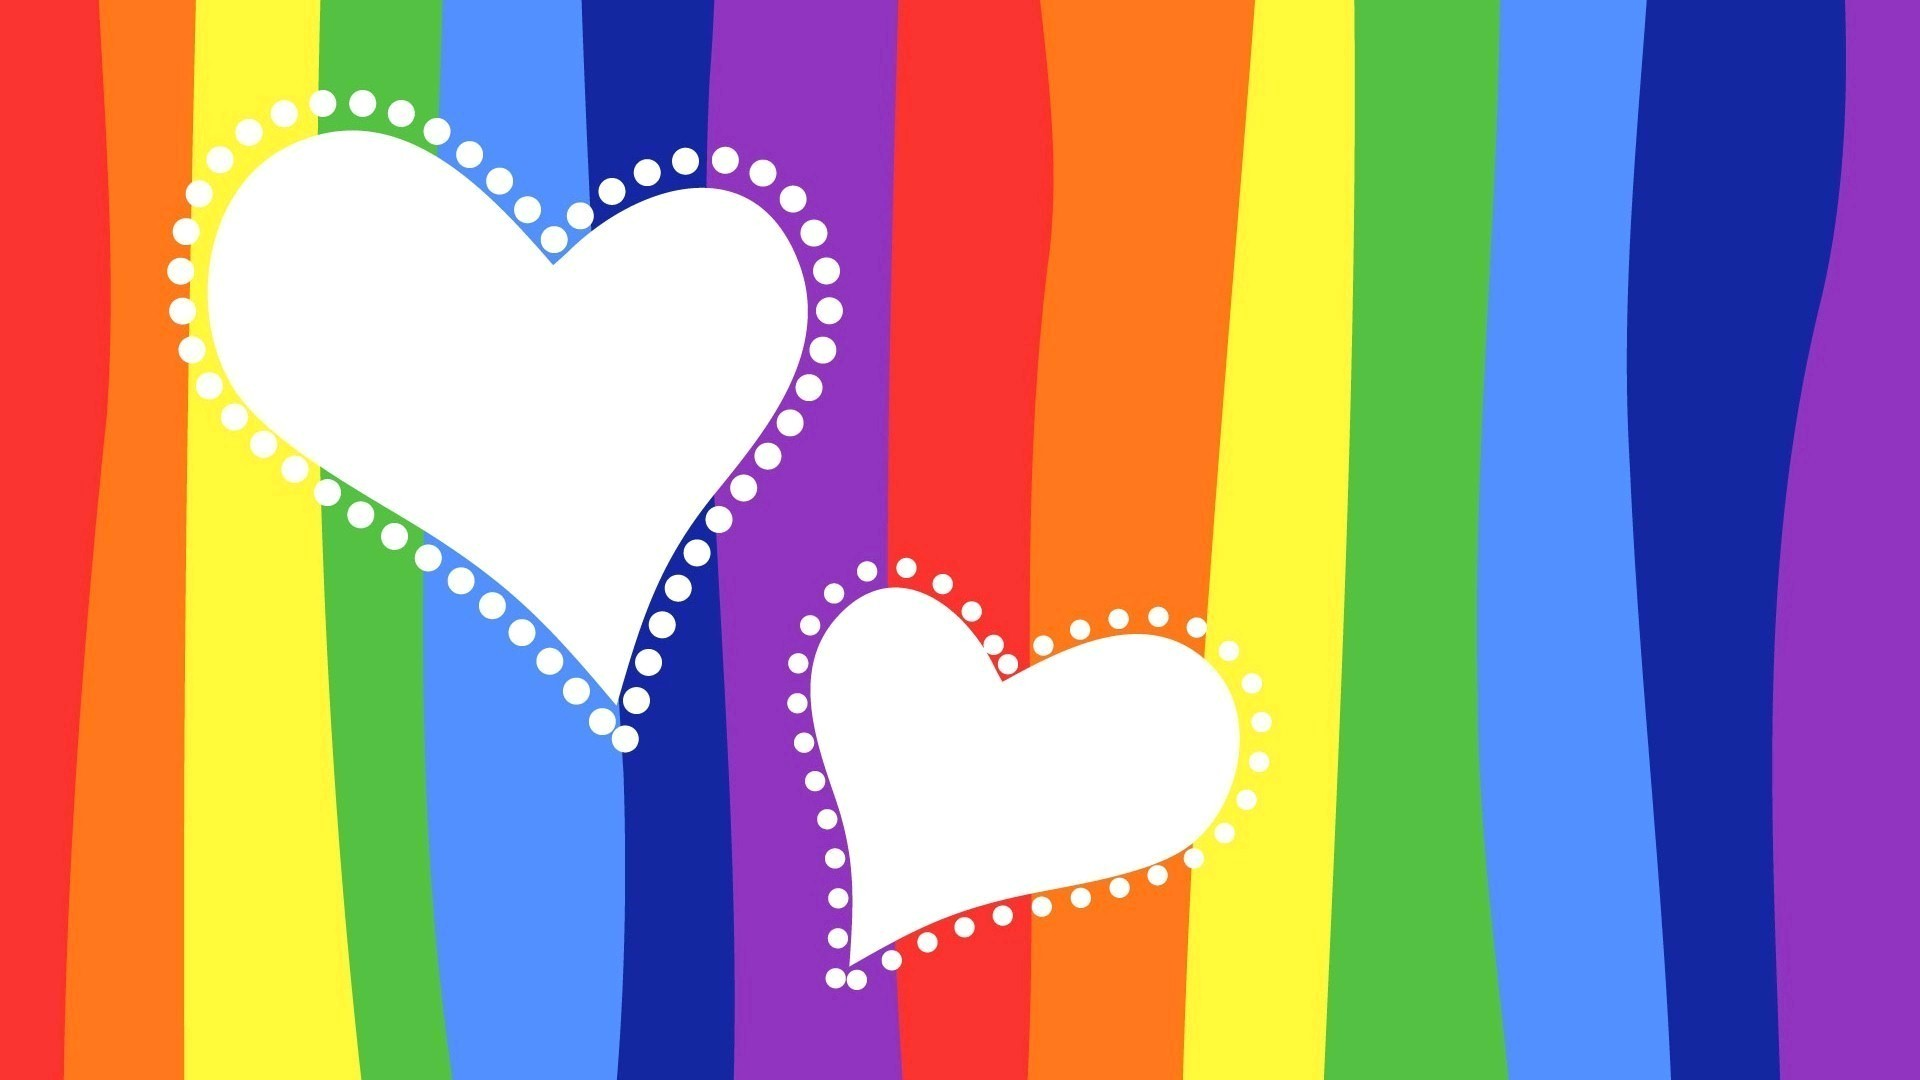 1920x1080 Love Heart Wallpapers. Previous Wallpaper · Two Hearts in Rainbow Background